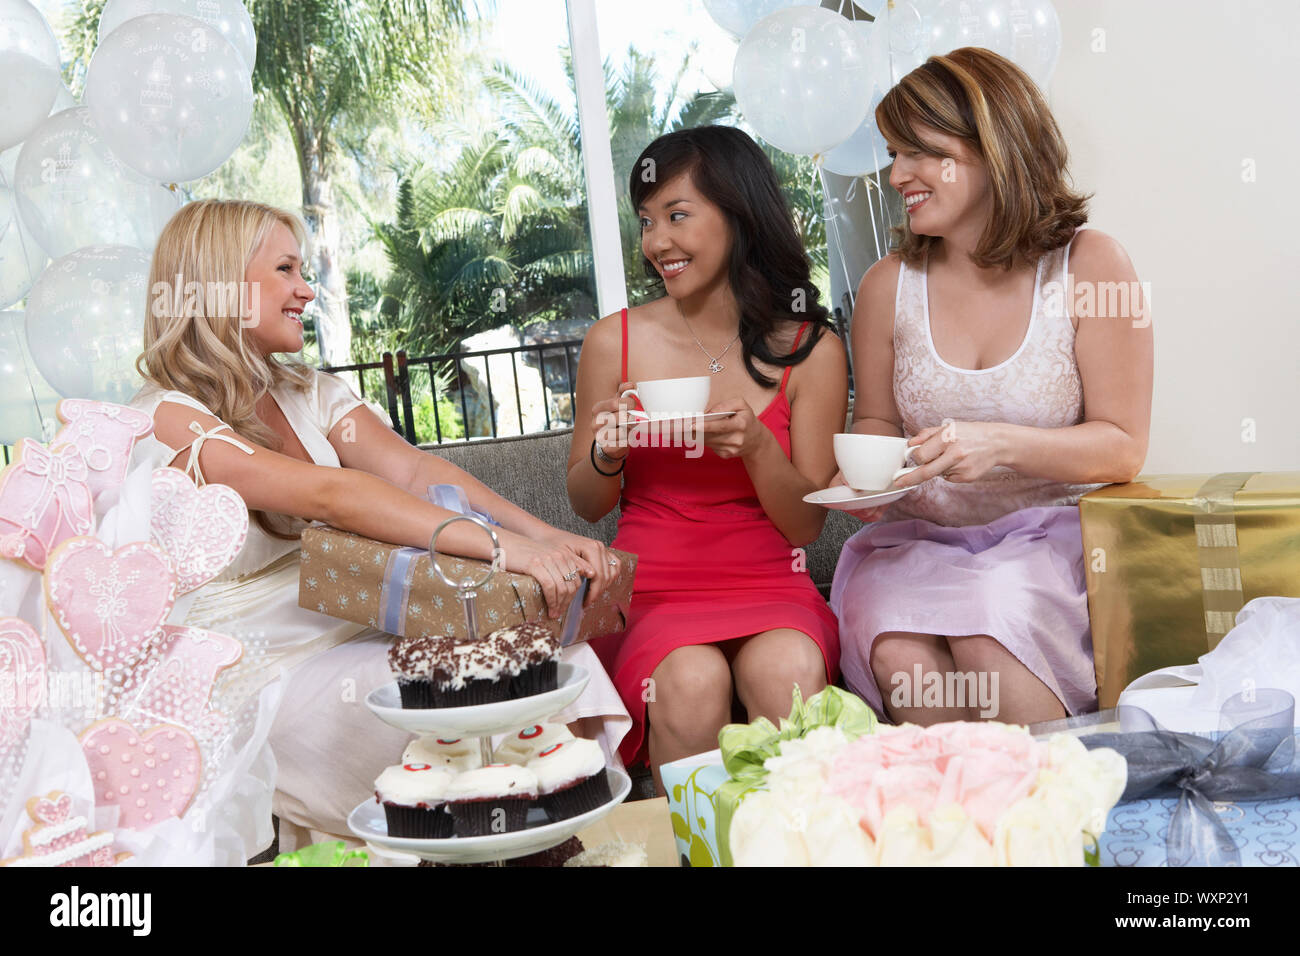 Friends Giving Gifts at Bridal Shower Stock Photo